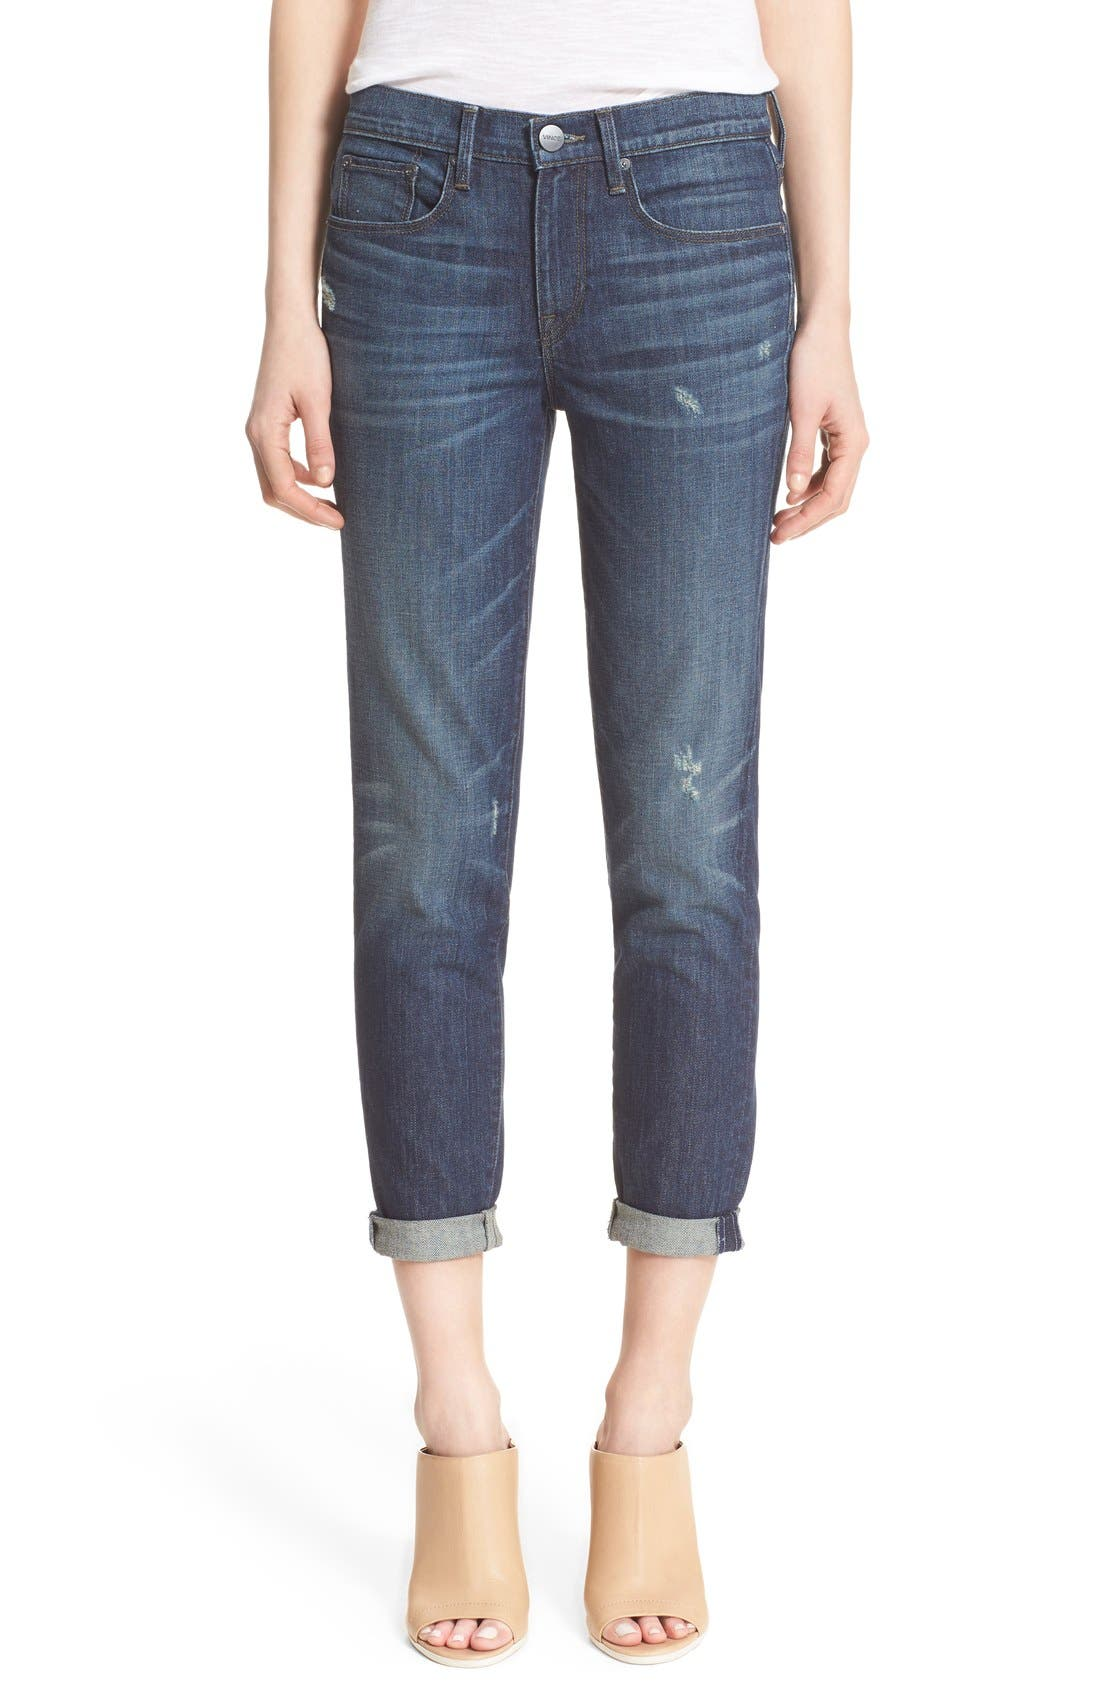 Alternate Image 1 Selected - Vince 'Mason' Relaxed Rolled Jeans (Hyperion Ave)